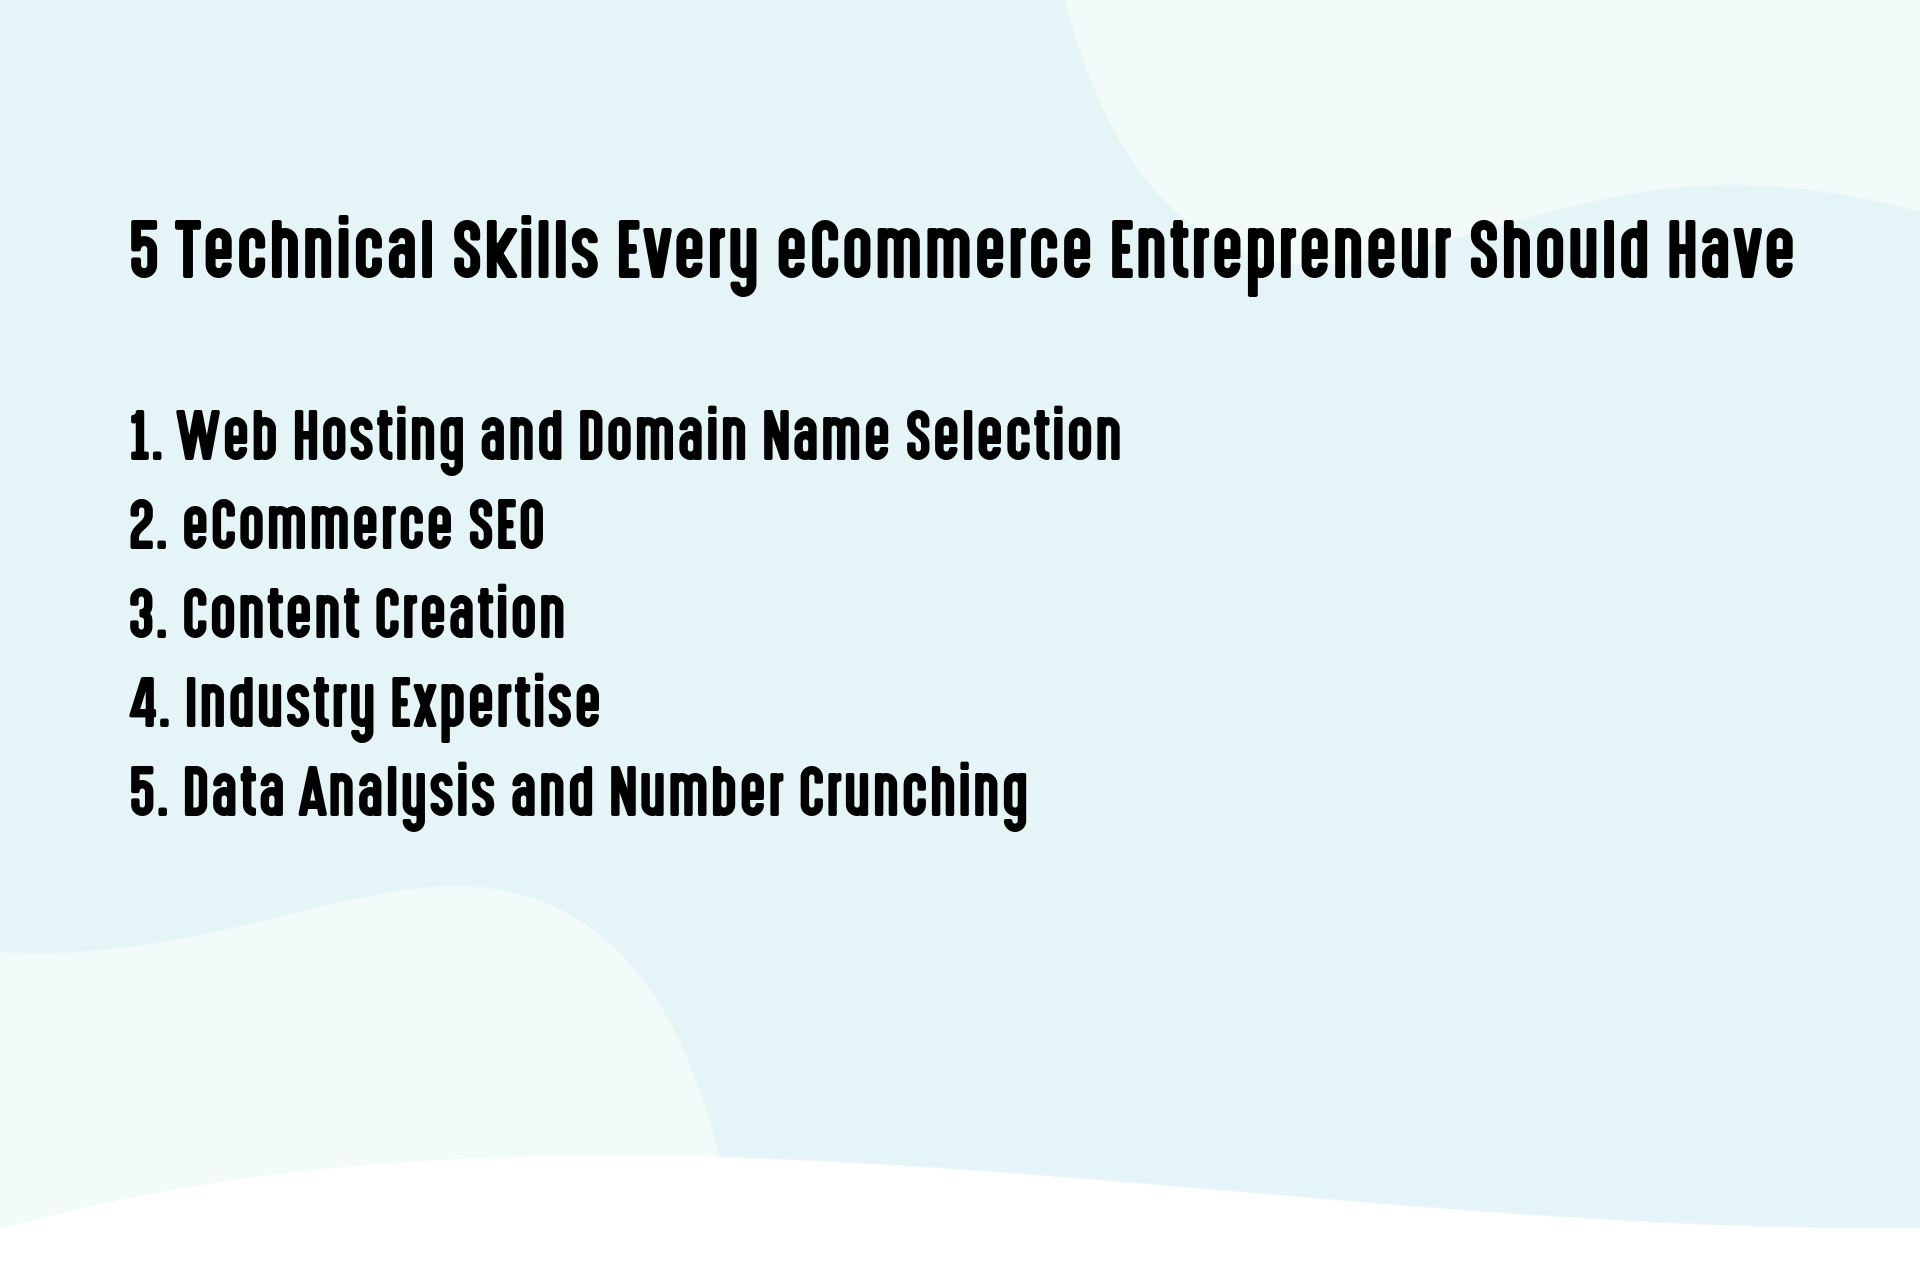 5 Technical Skills Every eCommerce Entrepreneur Should Have